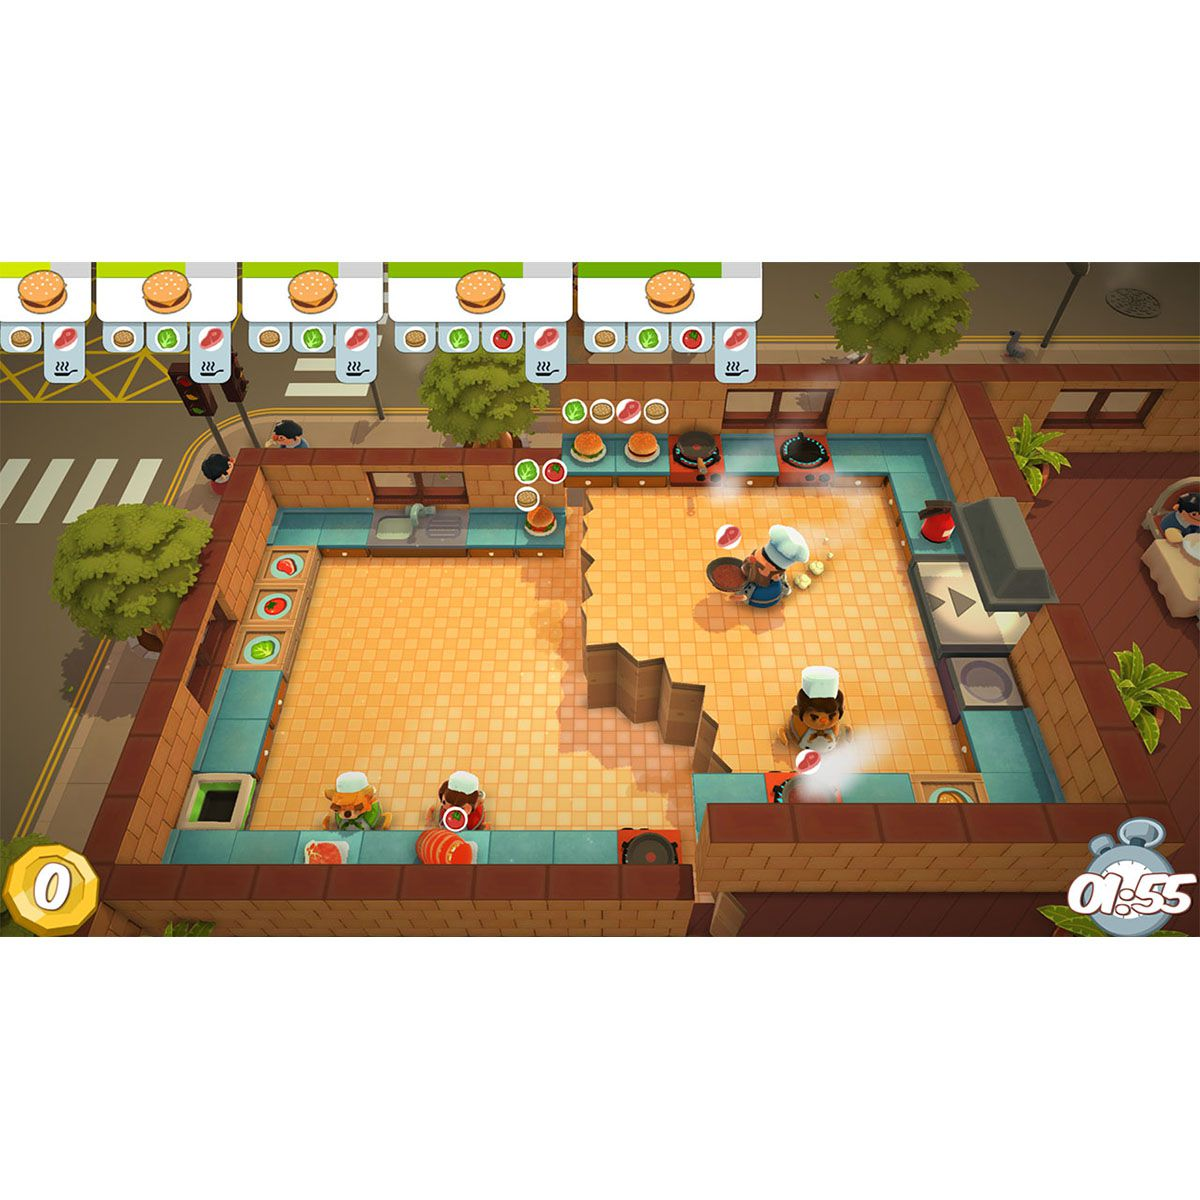 Overcooked! + Overcooked! 2 - Double Pack - Xbox One